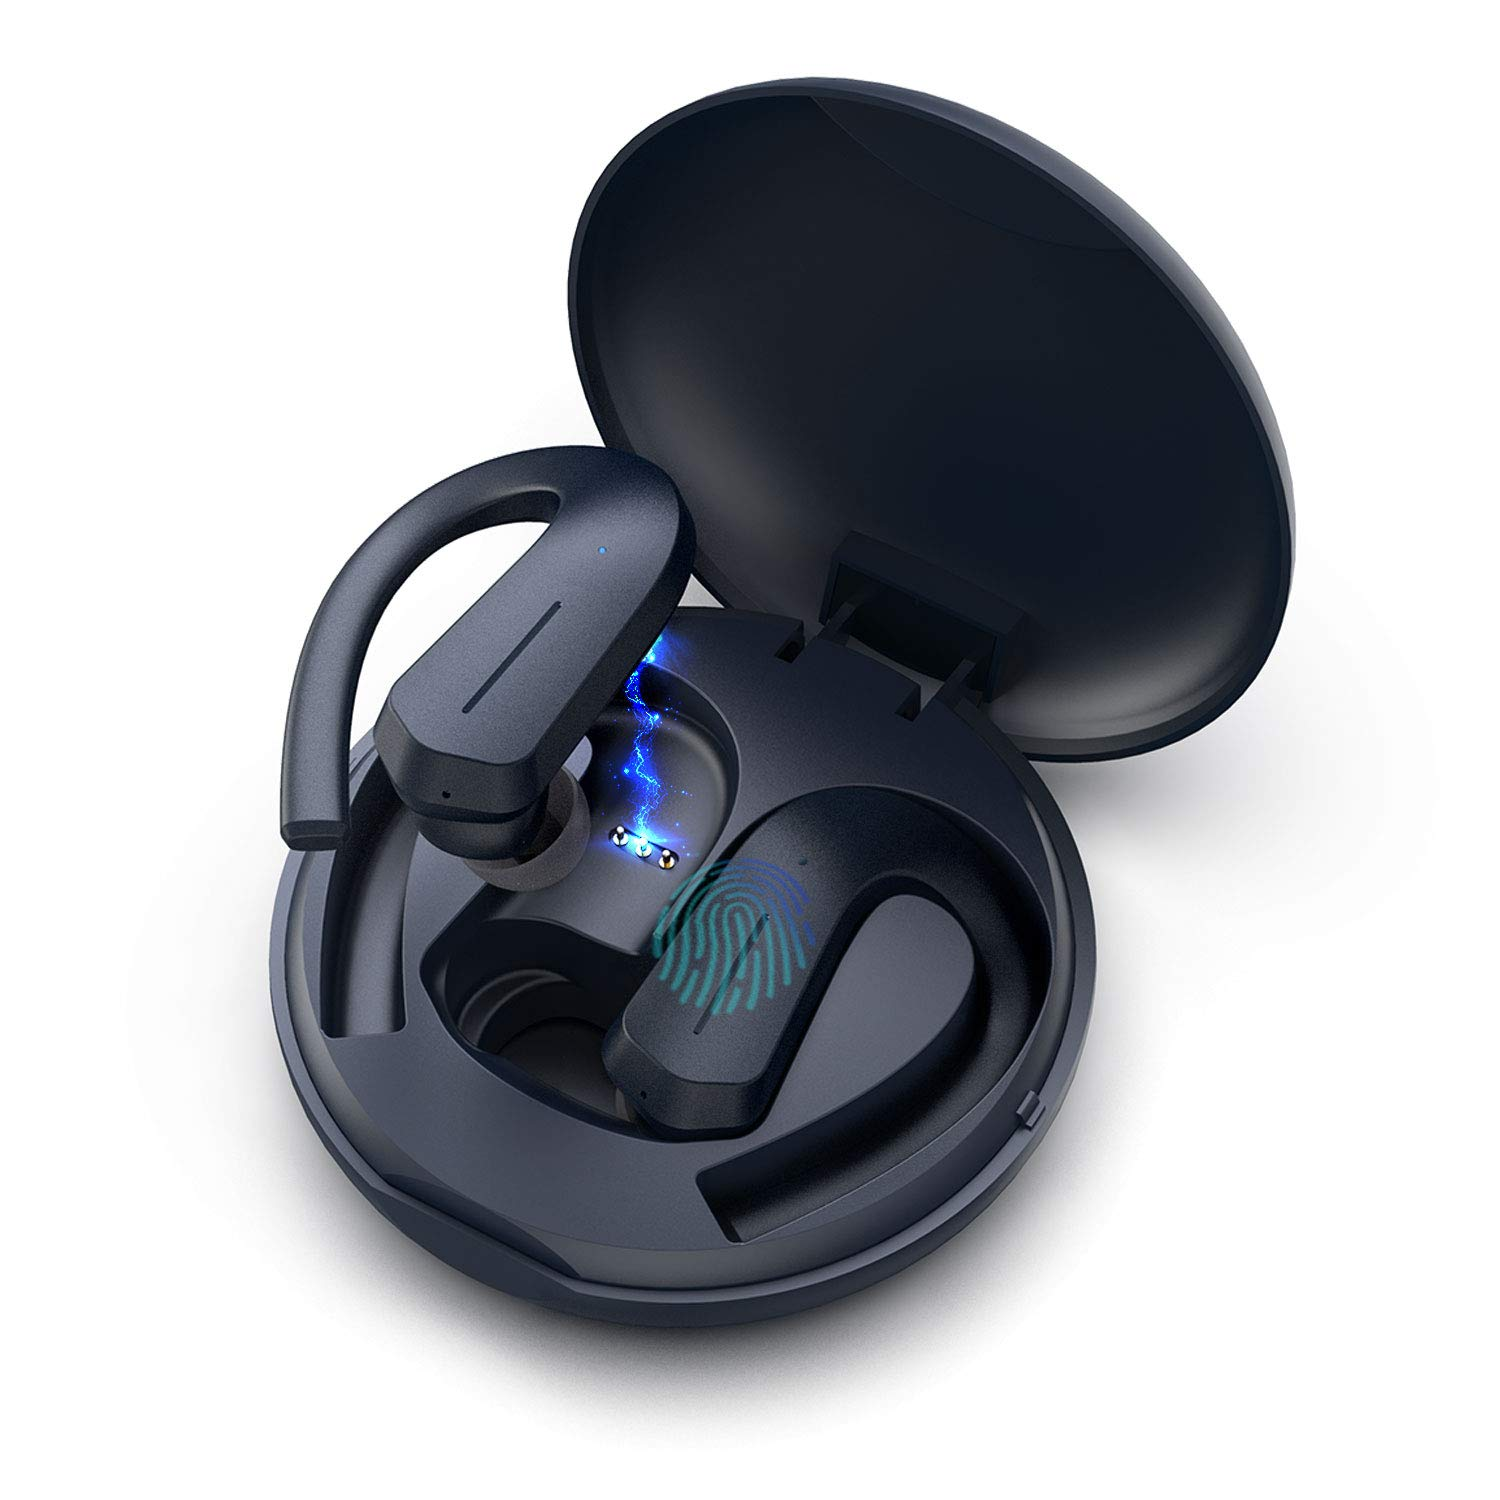 GGMM True Wireless Earbuds, Volume Touch Control, Wireless Headphones Bluetooth 5.0, 36H Playtime IPX7 Waterproof, in Ear Earphones with Mic TWS Stereo Deep Bass Headset for Sports with Charging Case